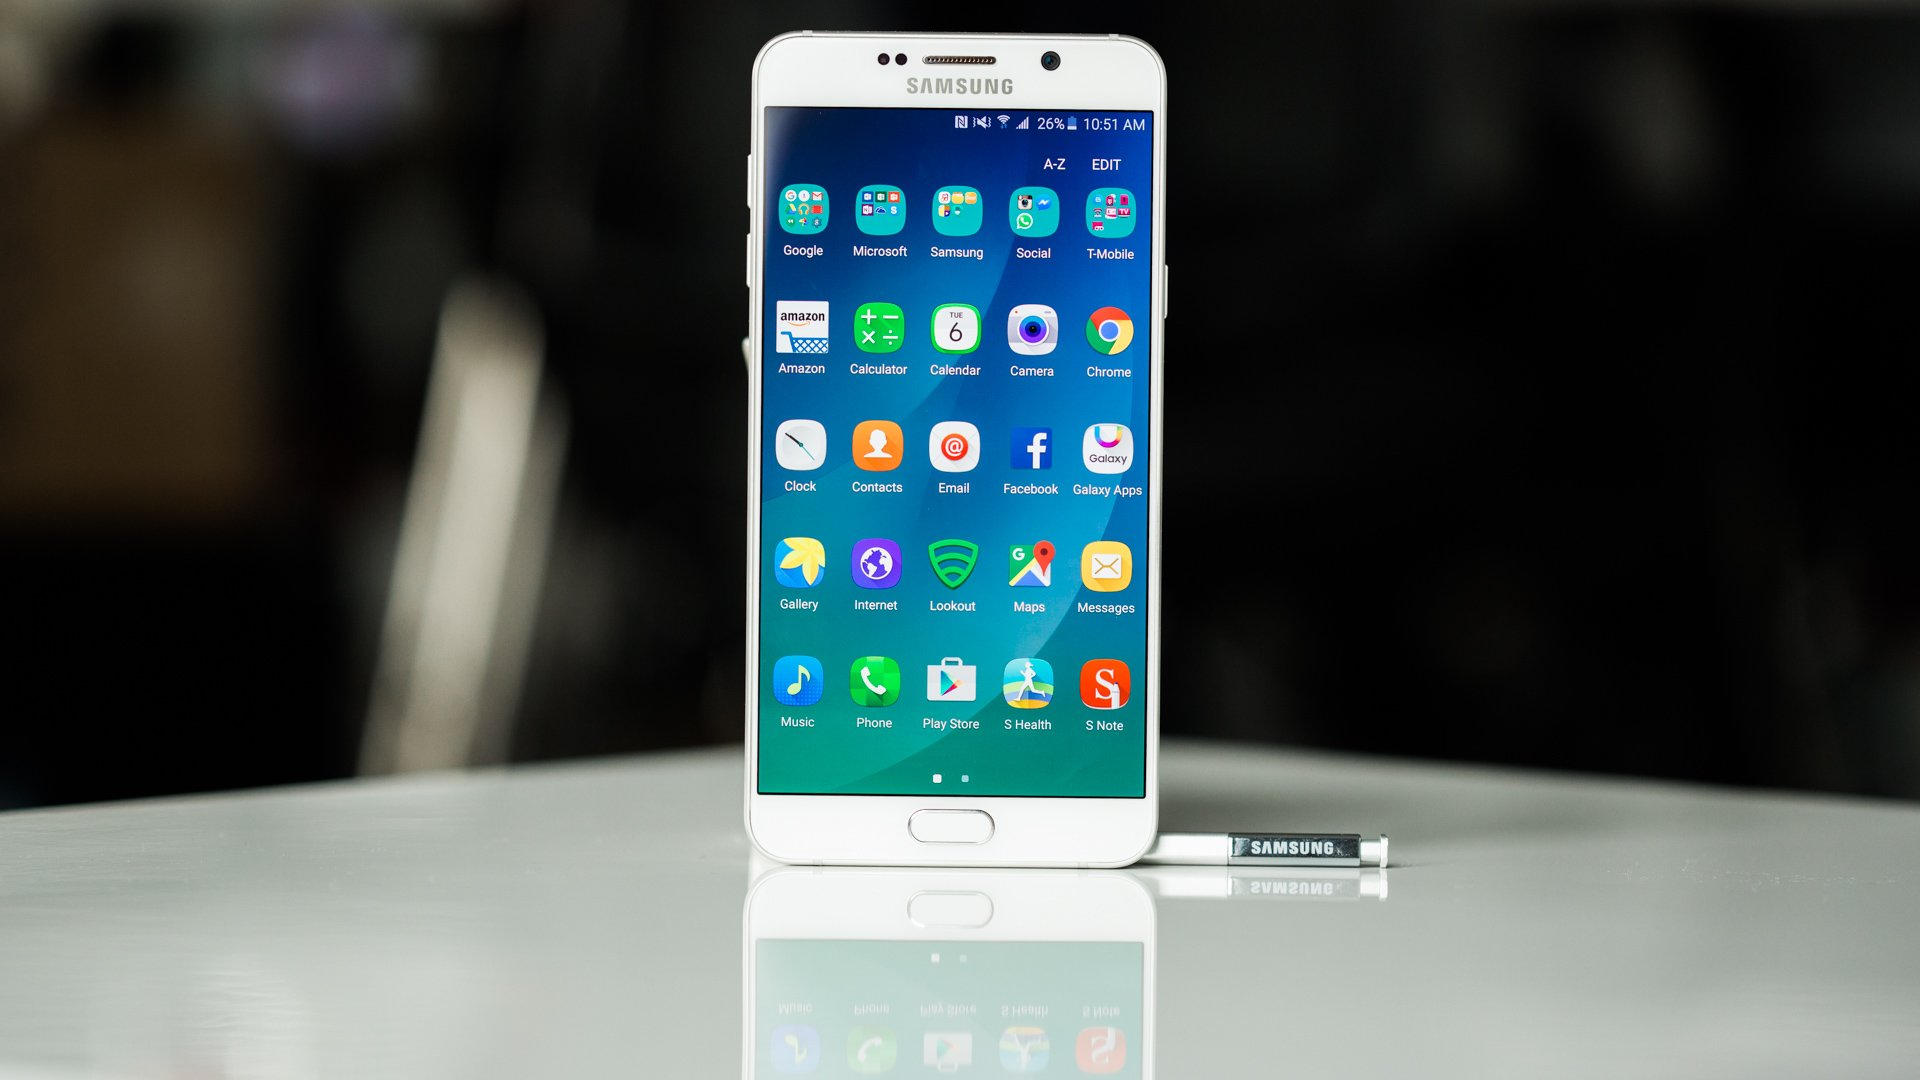 Samsung Galaxy Note 5, 2015. Image credit: Android Pit